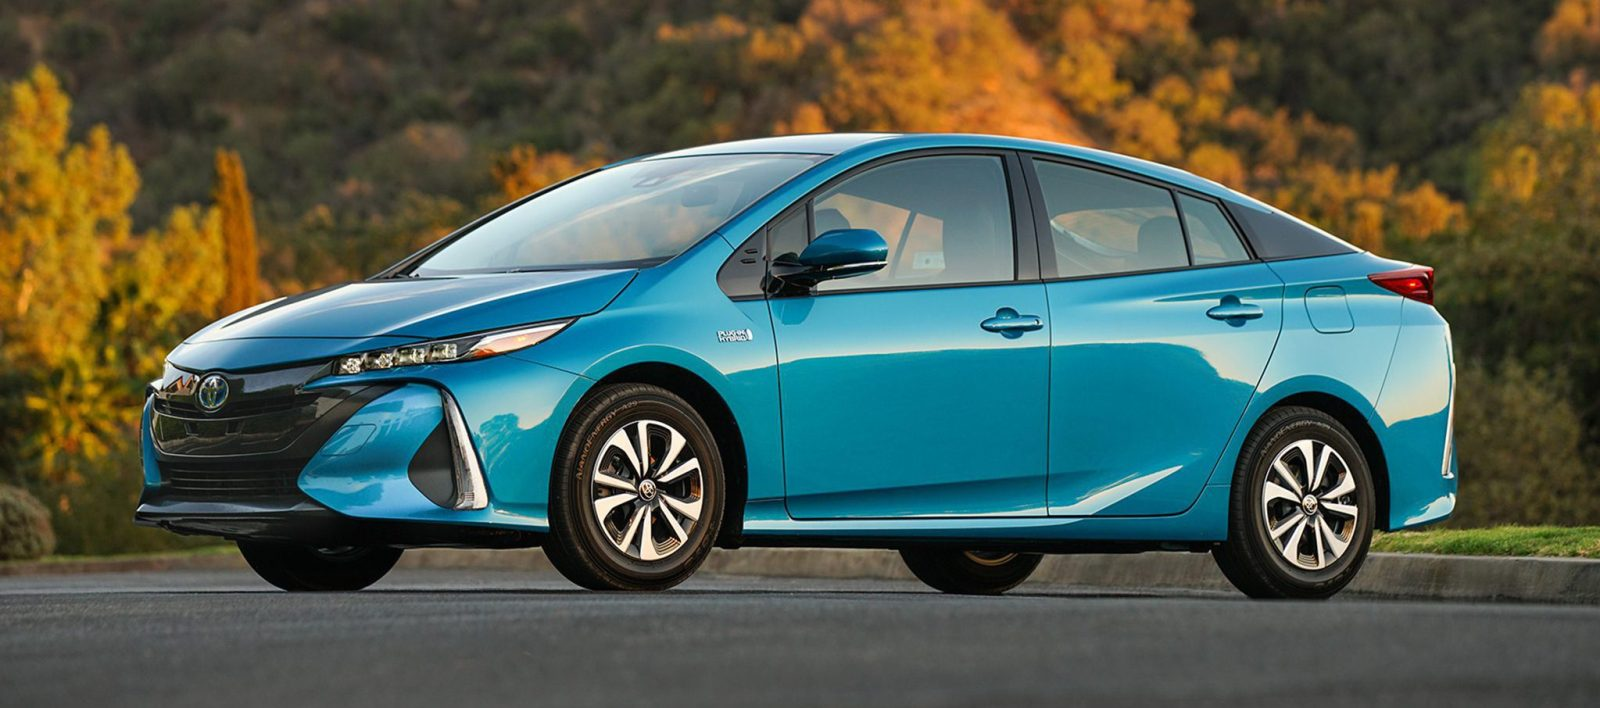 Toyota Could Finally Start Mass Producing Electric Cars